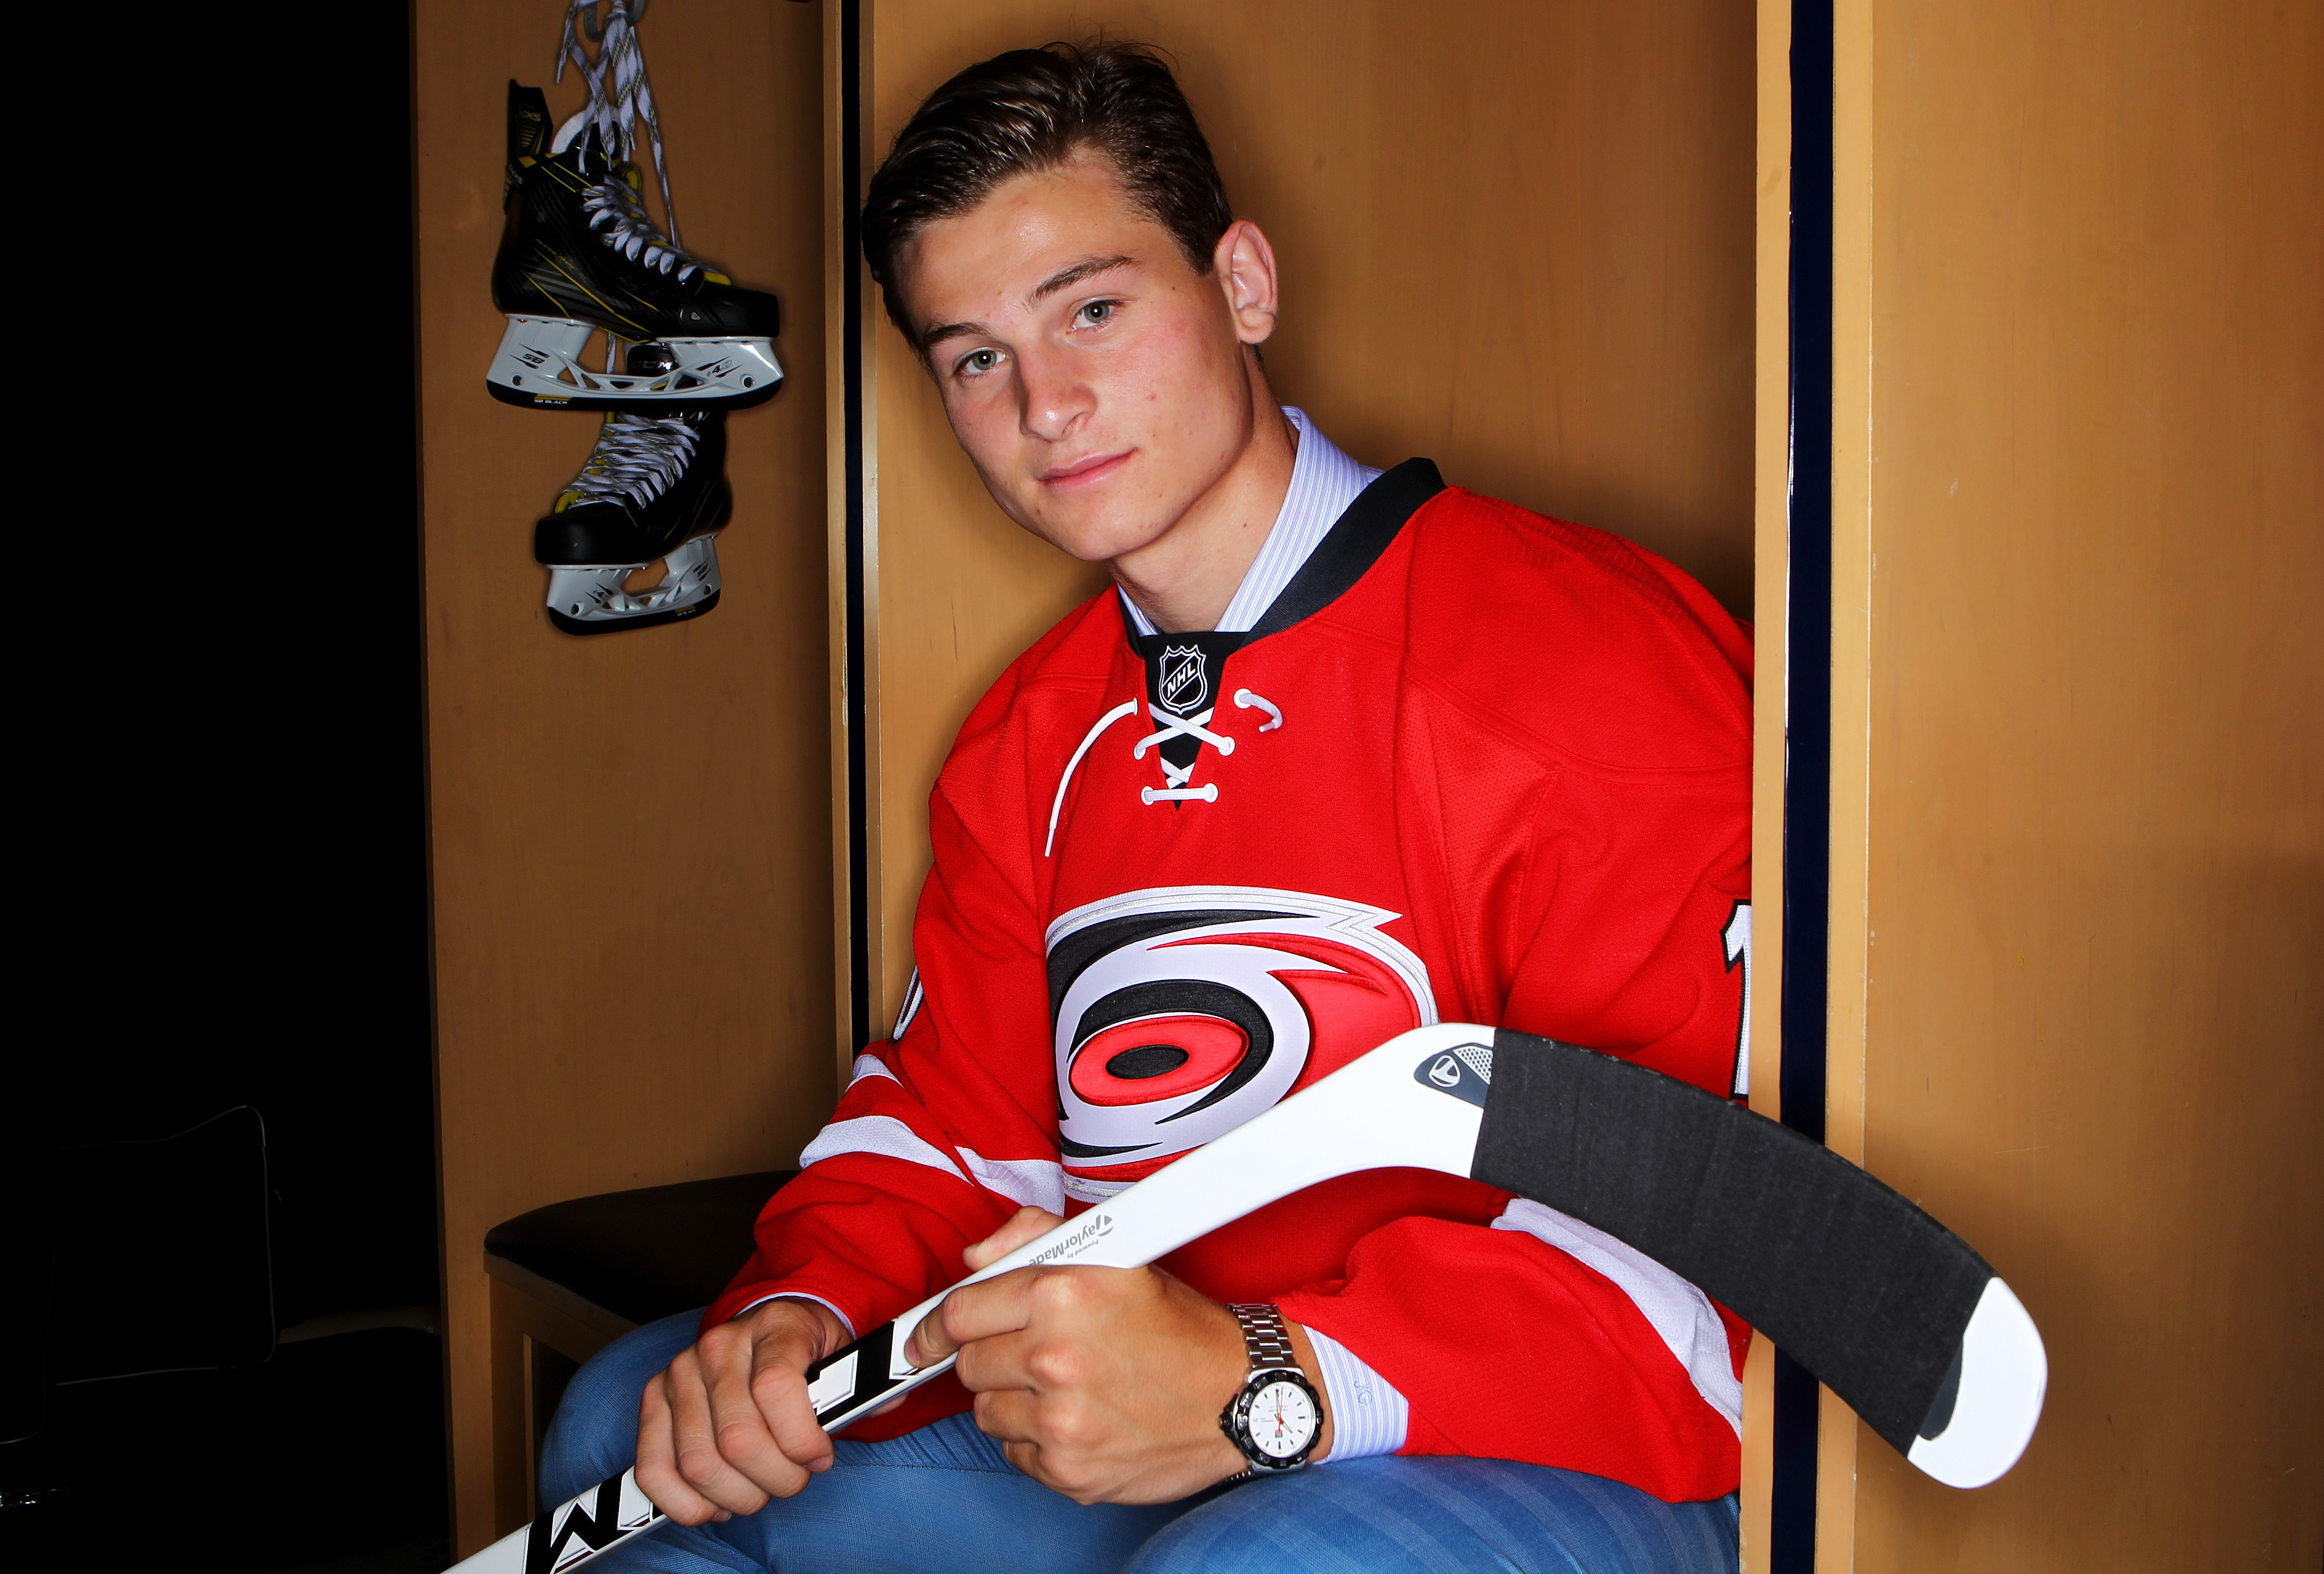 Julien Gauthier poses after being selected at number 21 by the Hurricanes